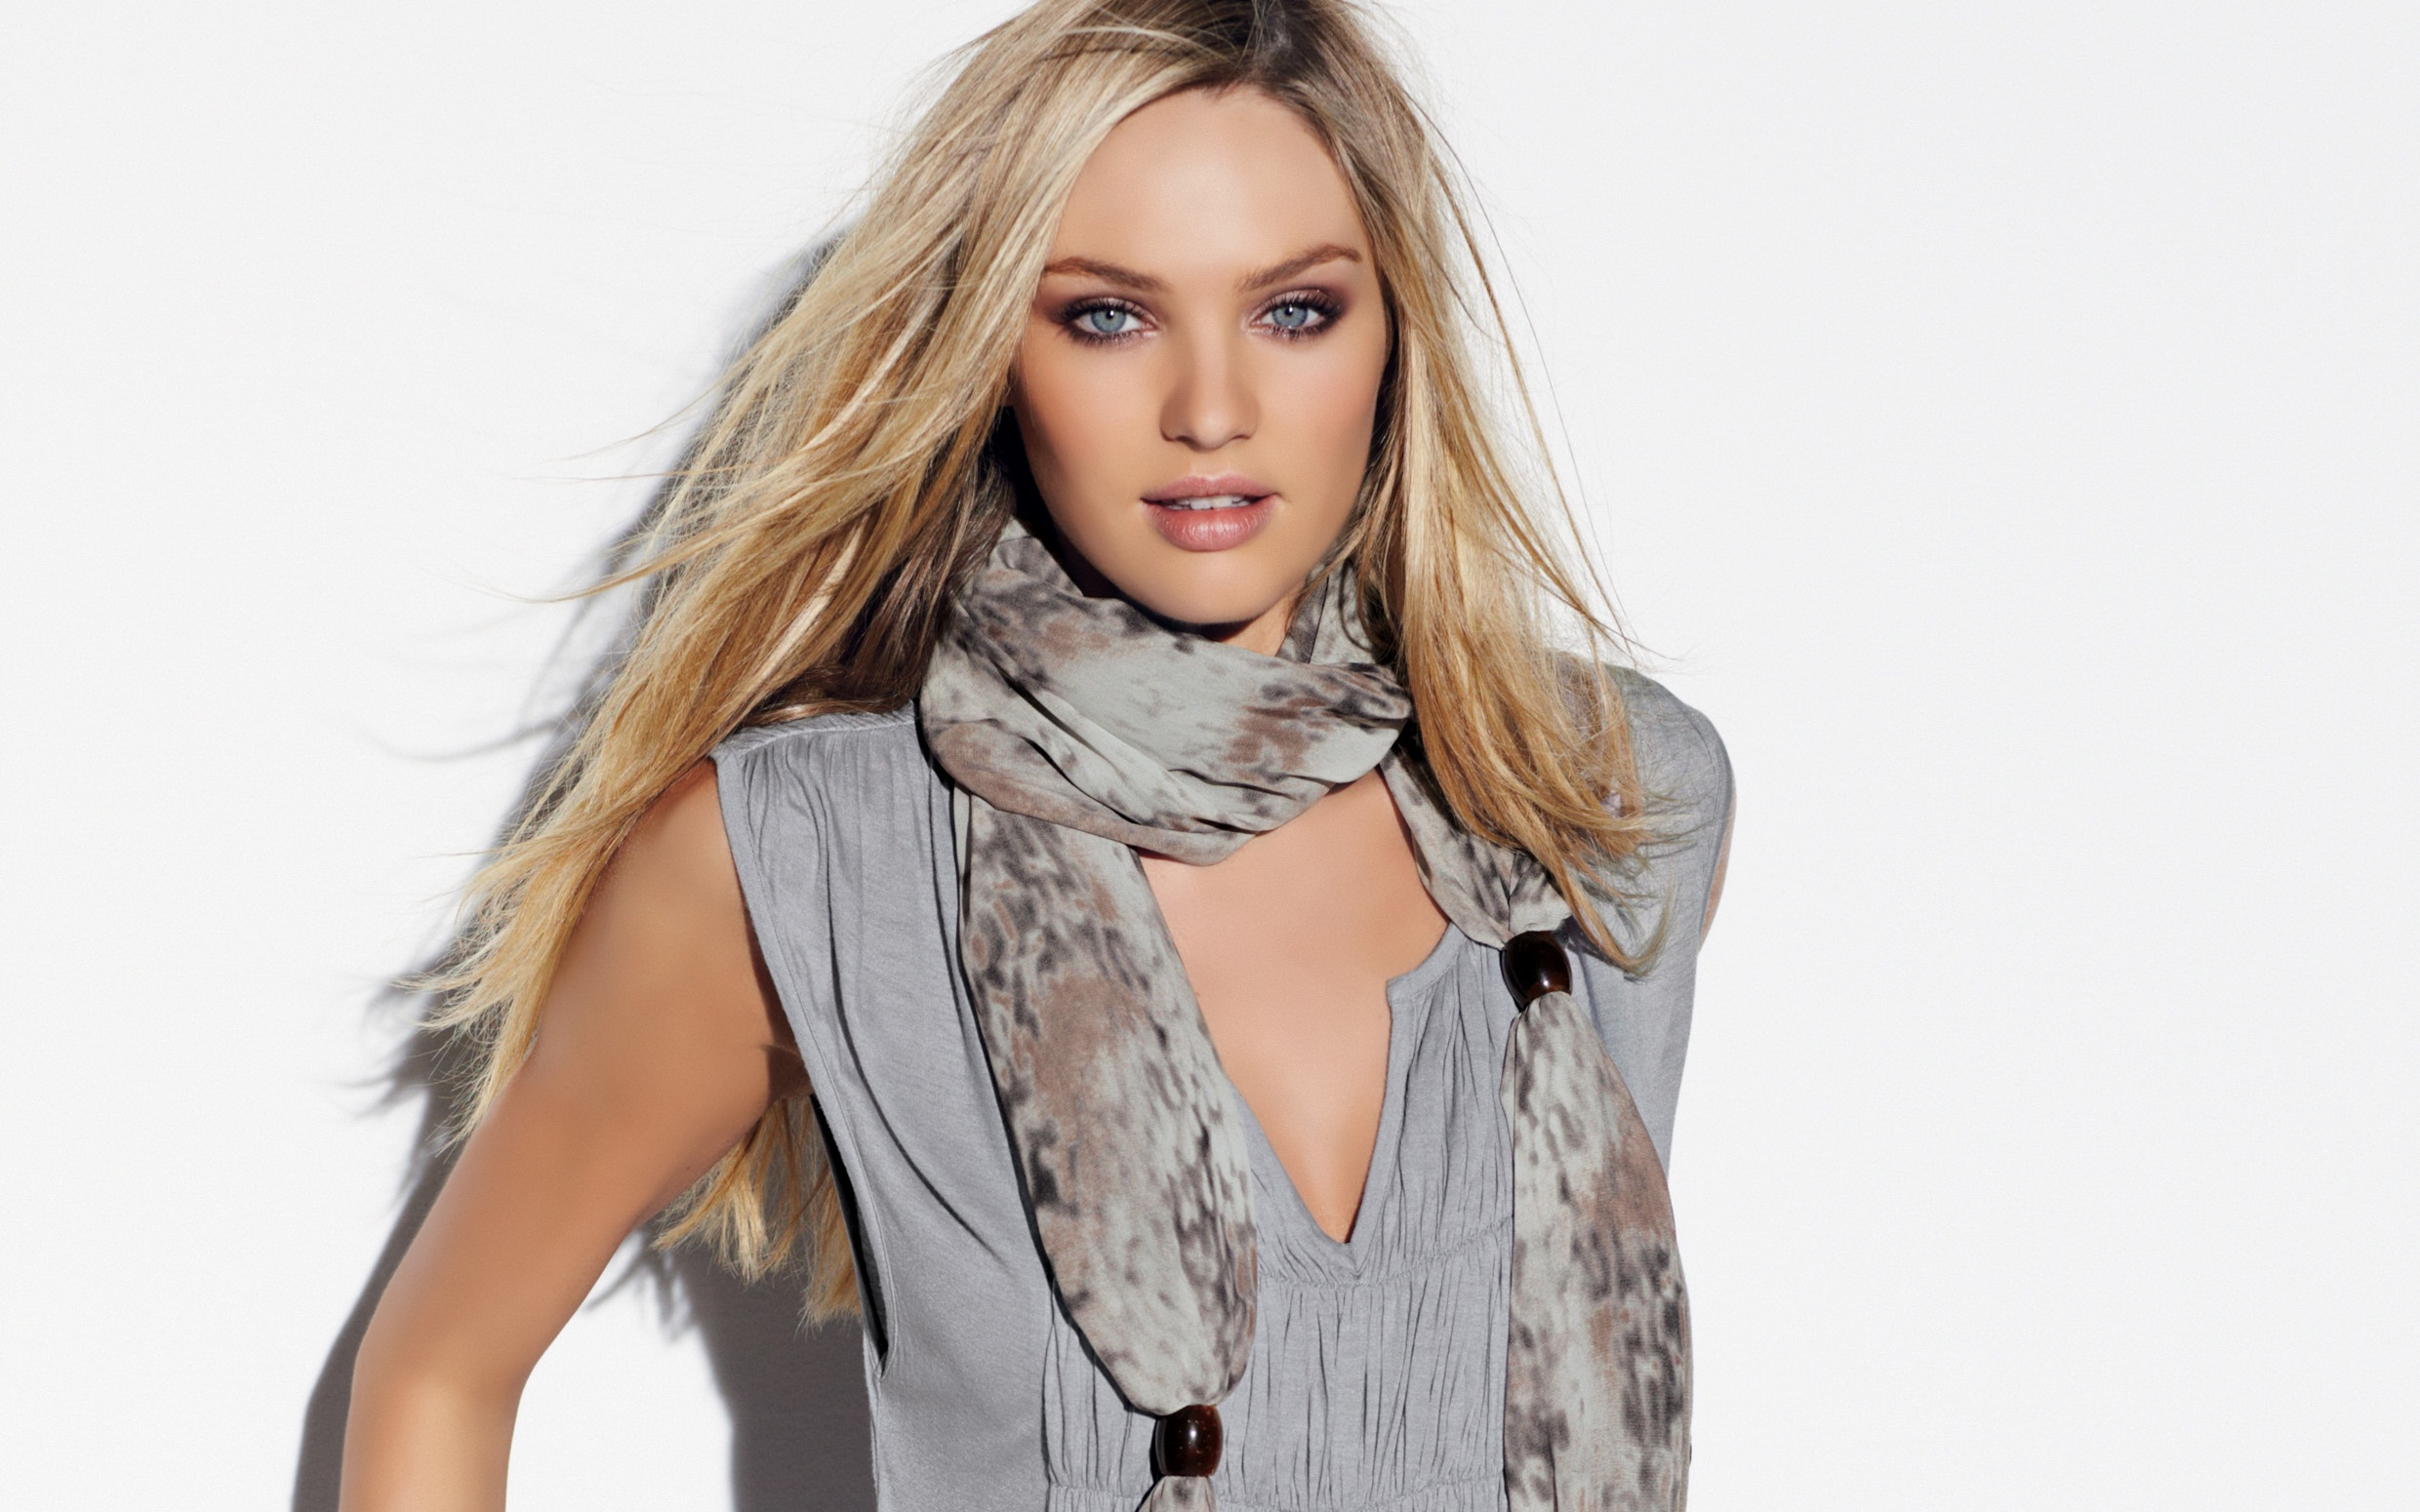 Candice Swanepoel HD Wallpaper   Background Image   1920x1200